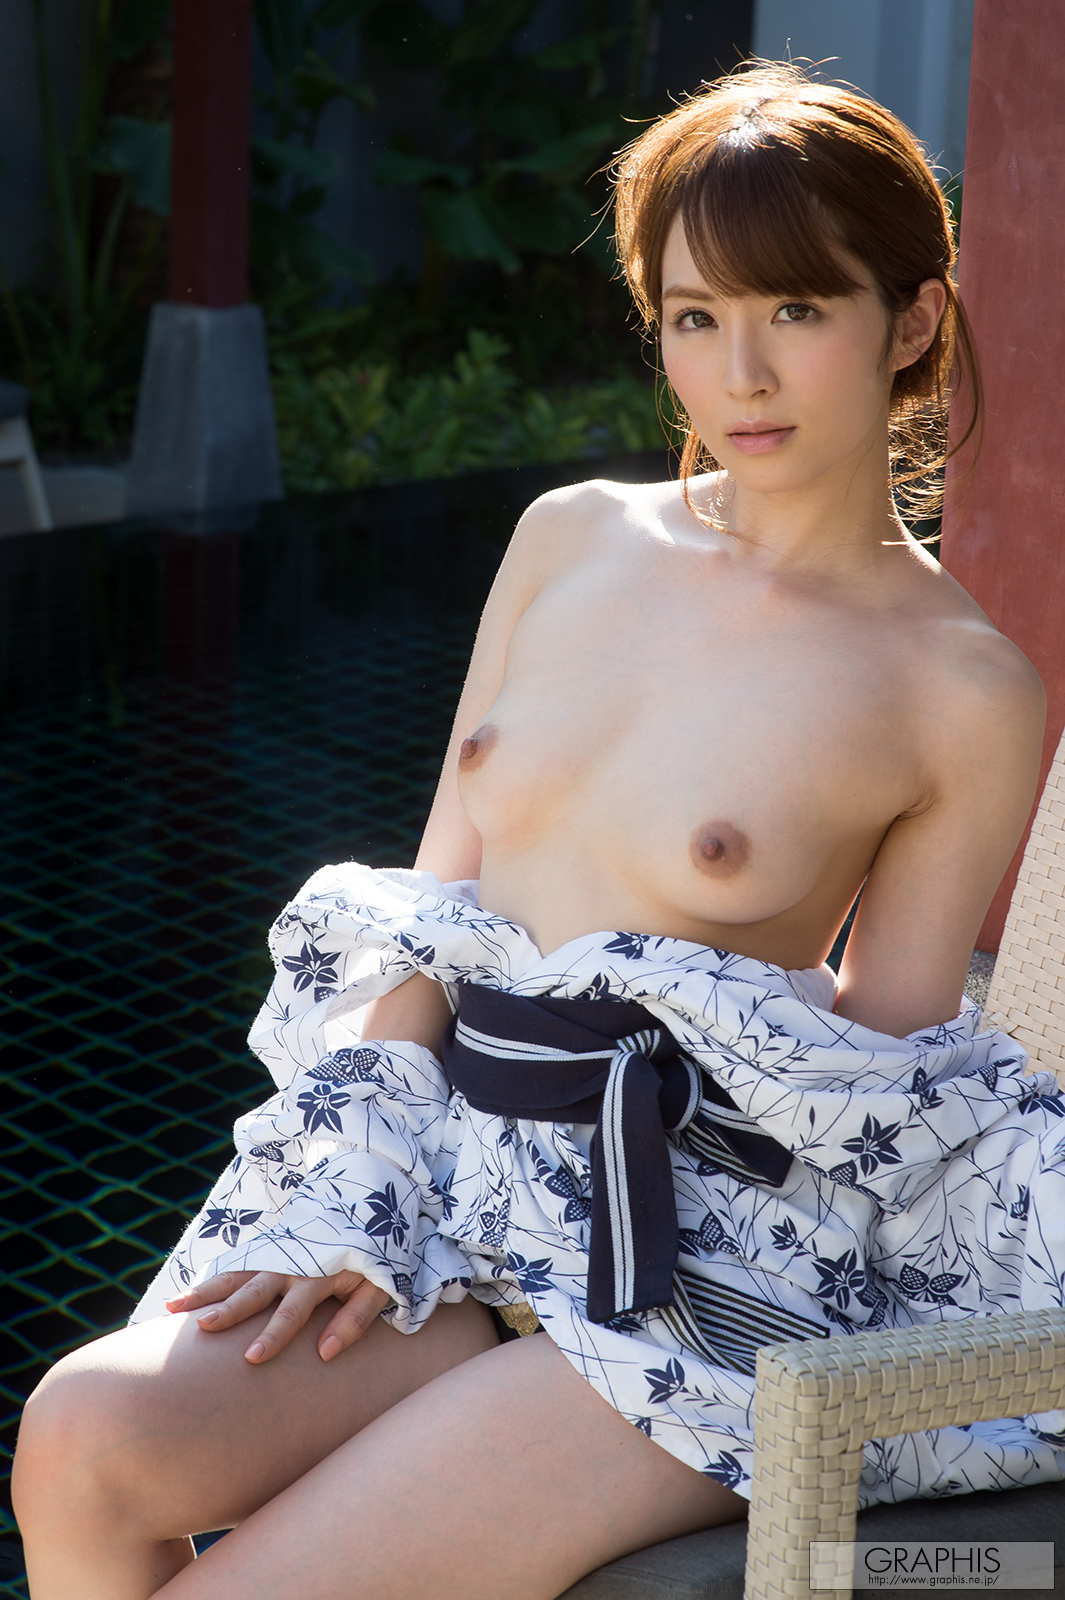 Miku Ohashi 大橋未久 | [Graphis] 2014 Limited Special ...